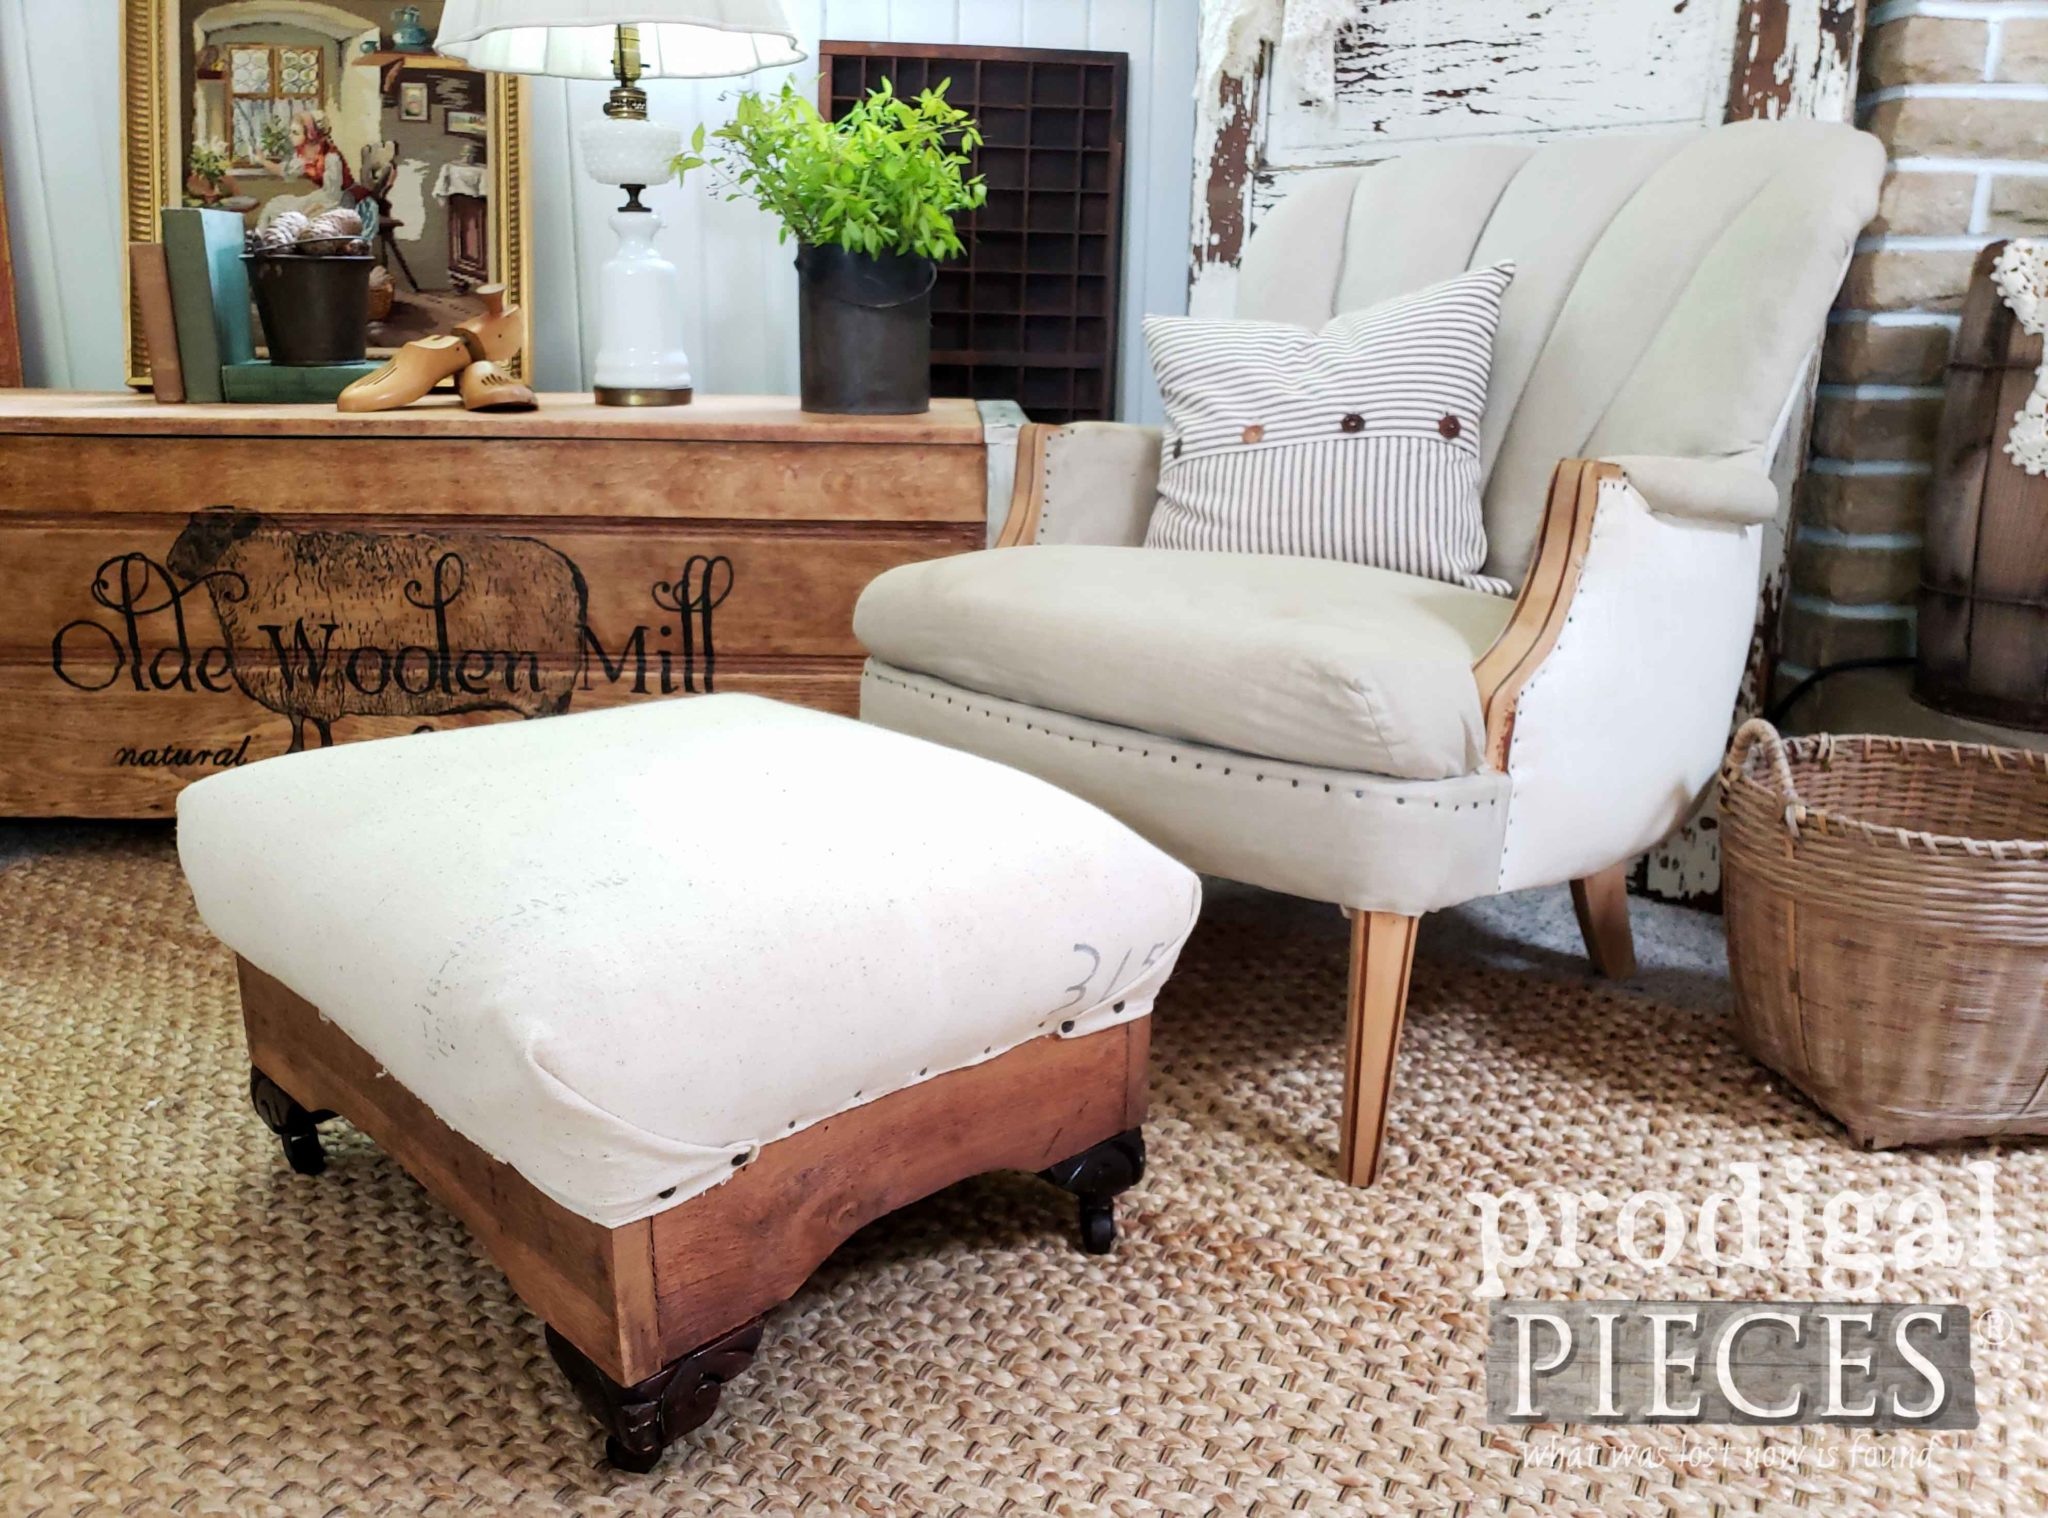 Rustic Farmhouse Style Living Room with Deconstructed Chair and Ottoman by Larissa of Prodigal Pieces | prodigalpieces.com